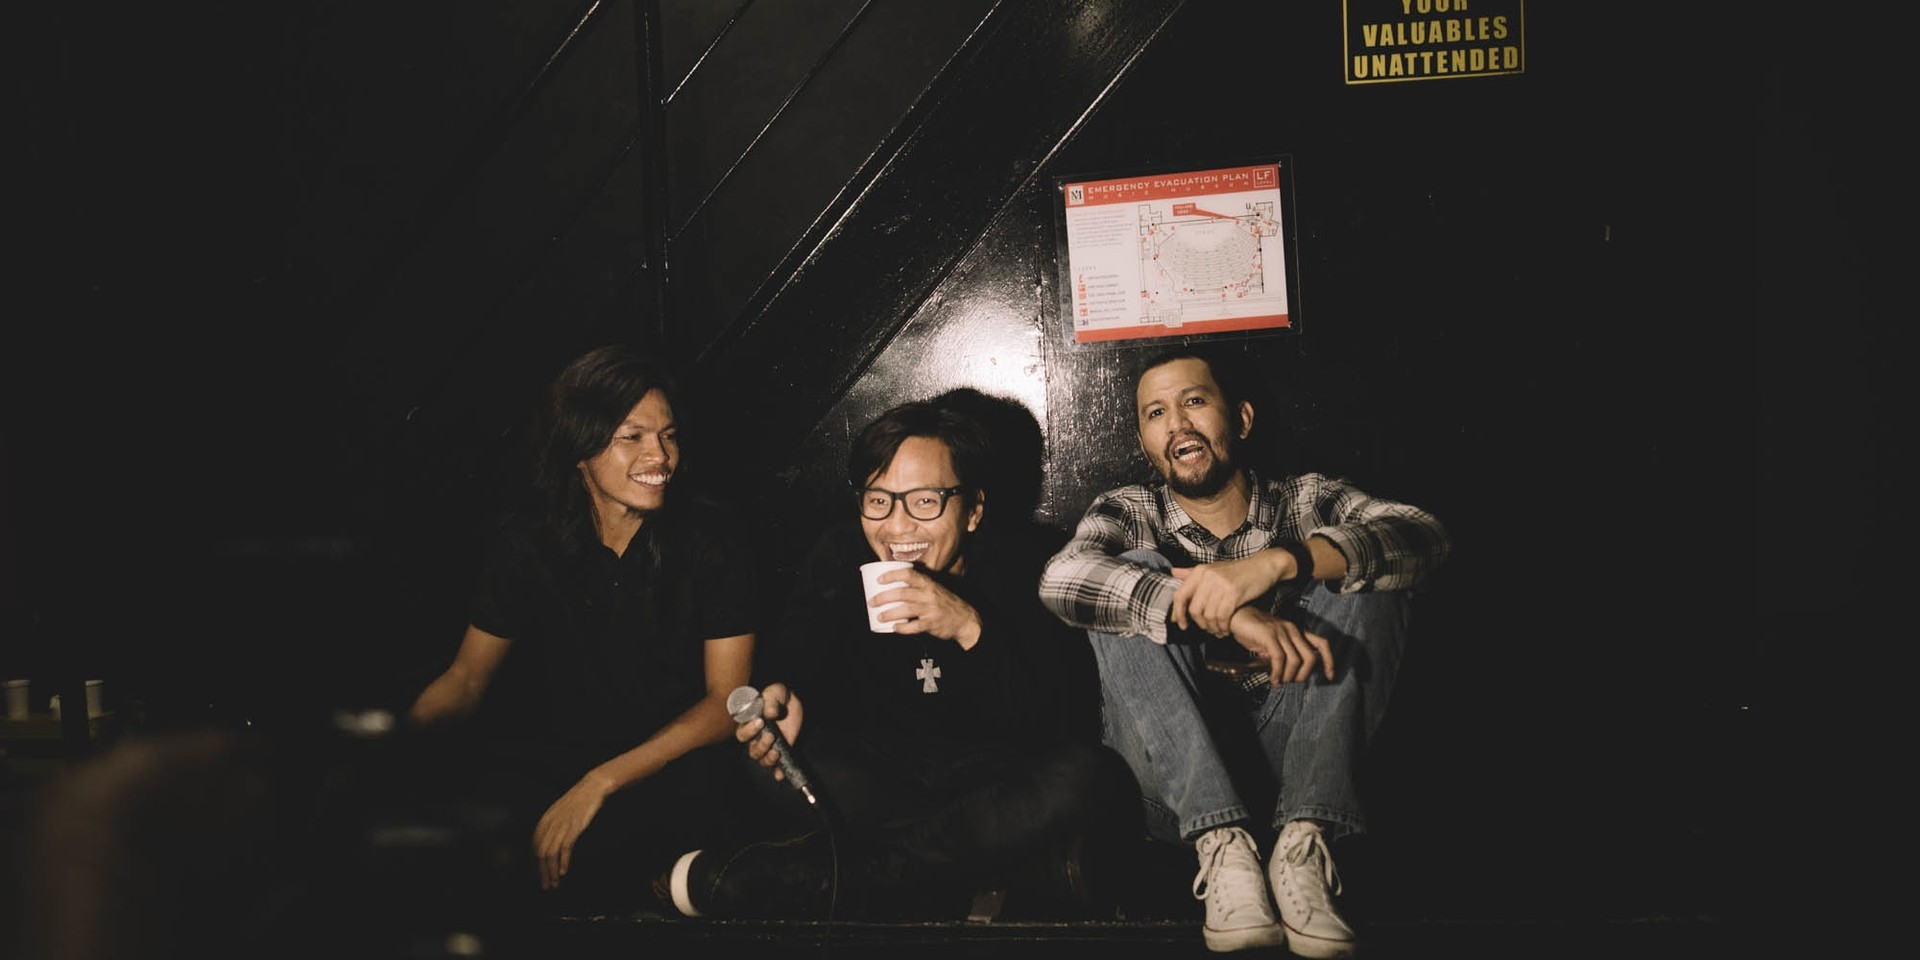 Danao, Dancel, Dumas: on new concert feels, more strings and playing together